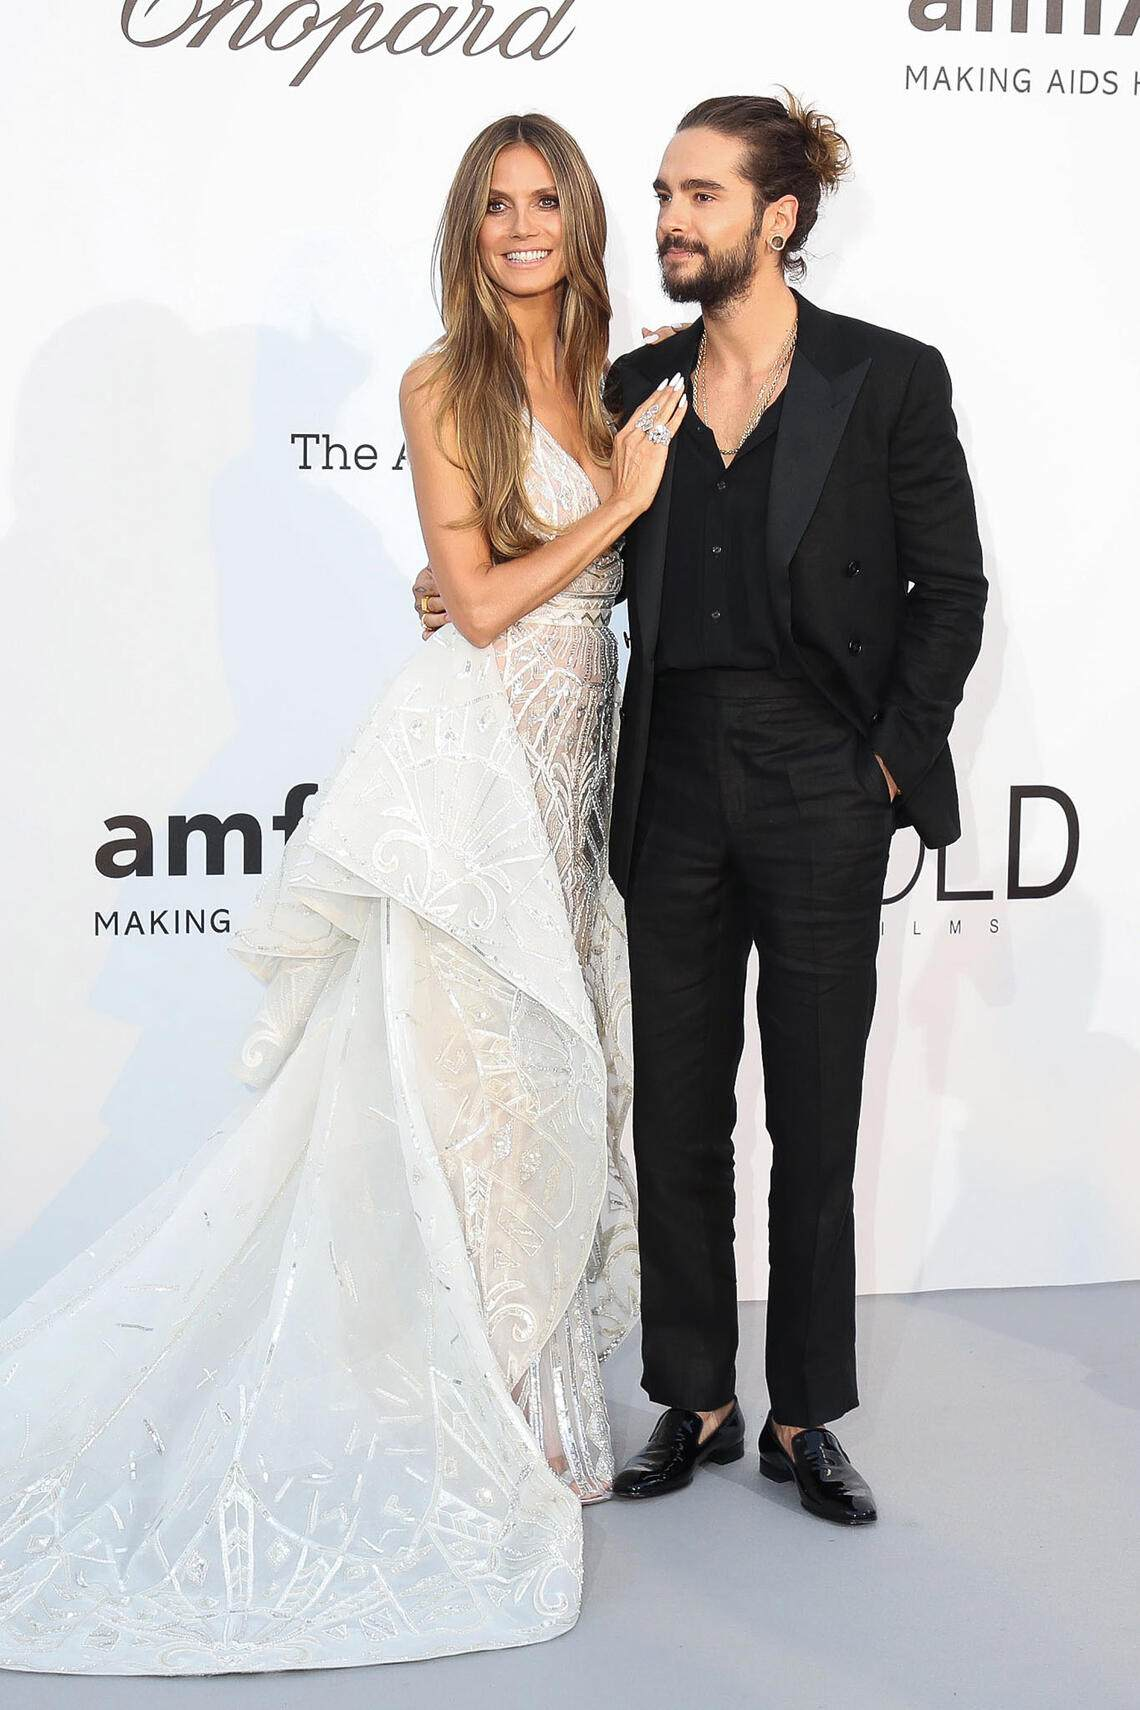 CAP D'ANTIBES, FRANCE - MAY 17: Heidi Klum and Tom Kaulitz arrive at the amfAR Gala Cannes 2018 at Hotel du Cap-Eden-Roc on May 17, 2018 in Cap d'Antibes, France. (Photo by Mike Marsland/WireImage)